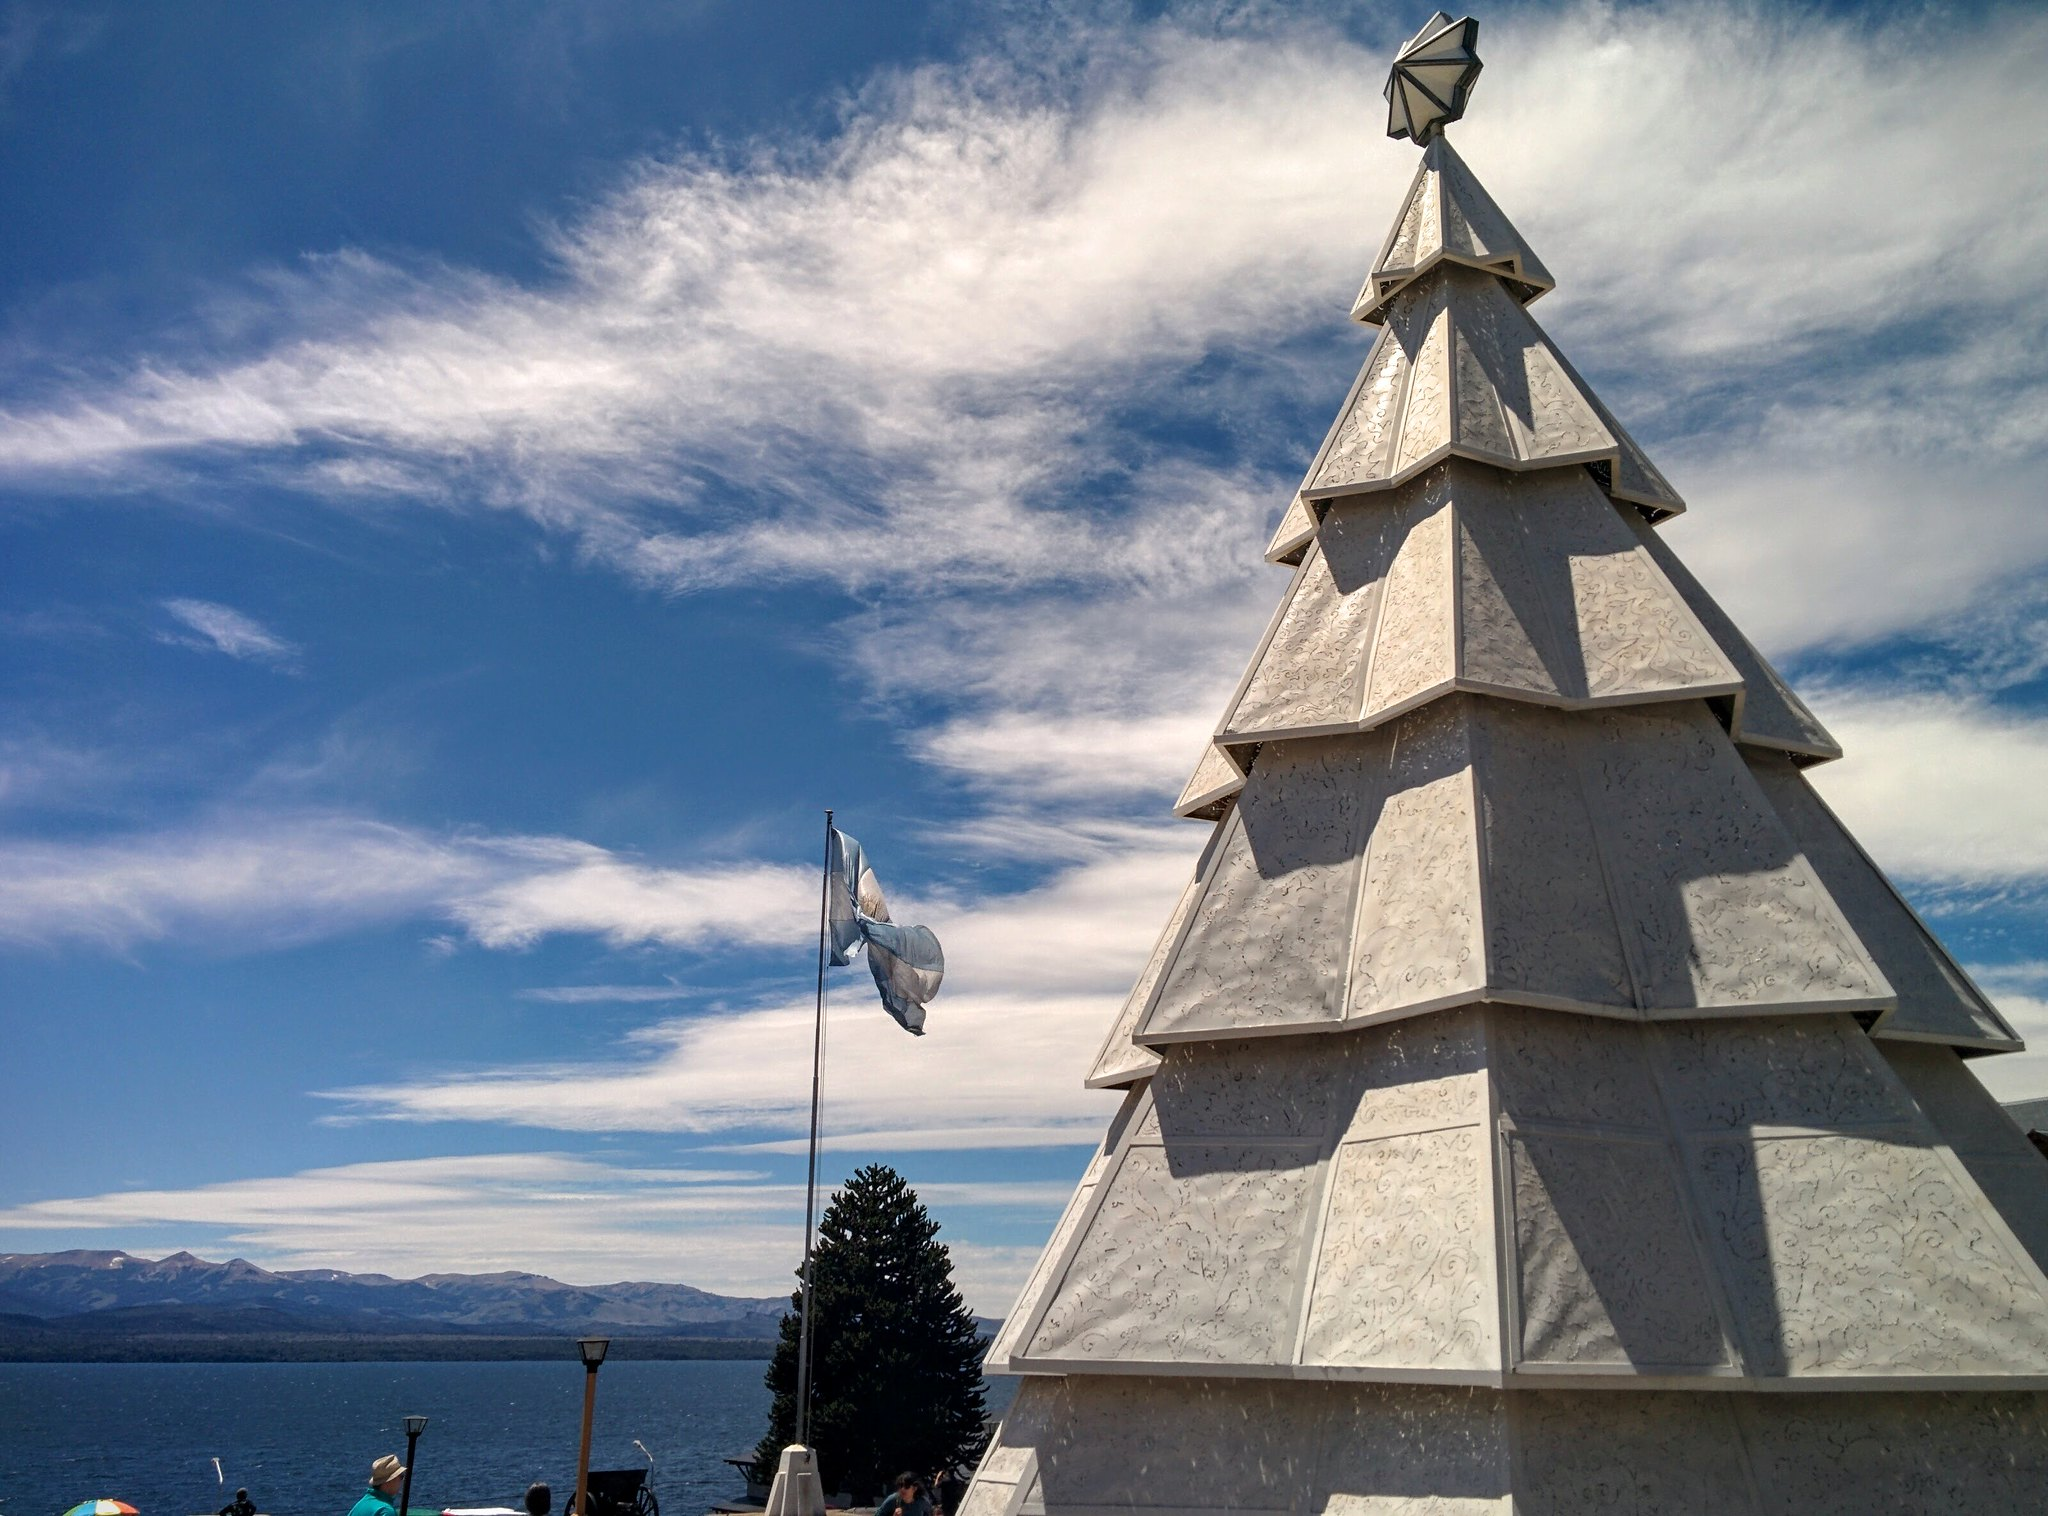 A giant white Christmas tree in Bariloche central square